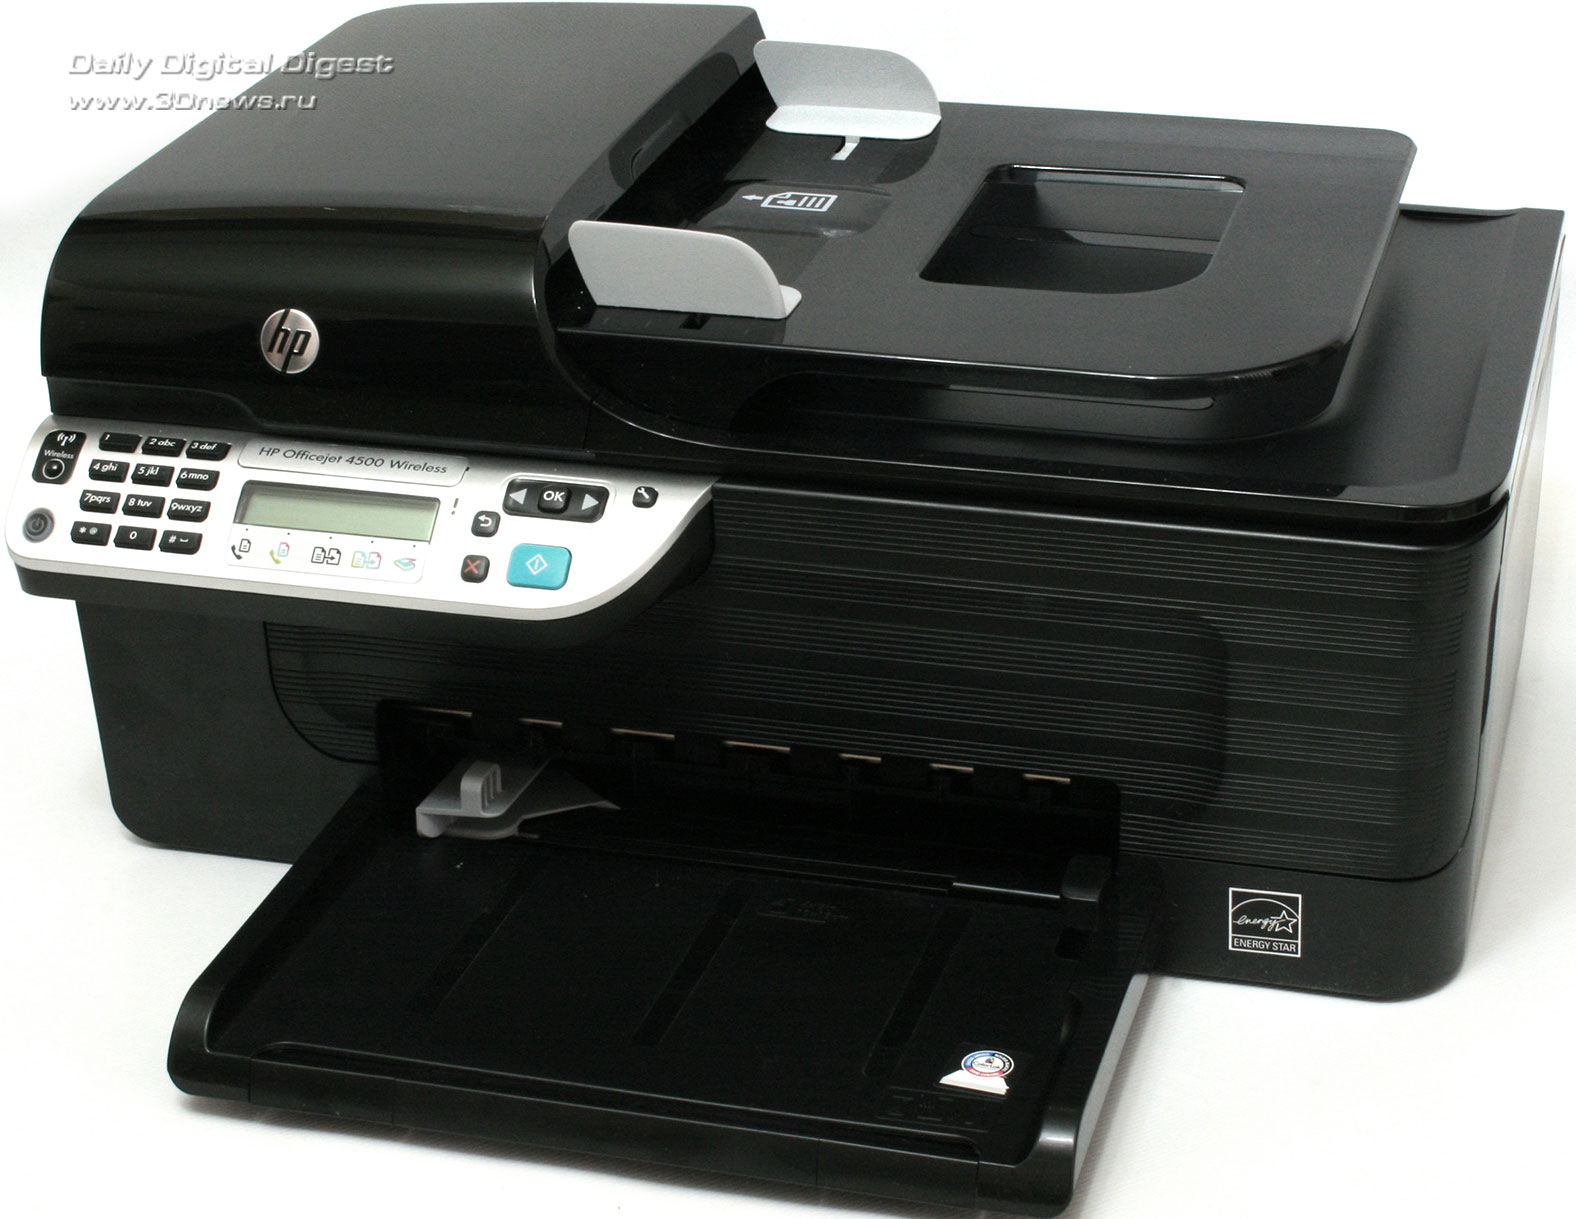 how to use non hp printer cartridge in officejet 6700